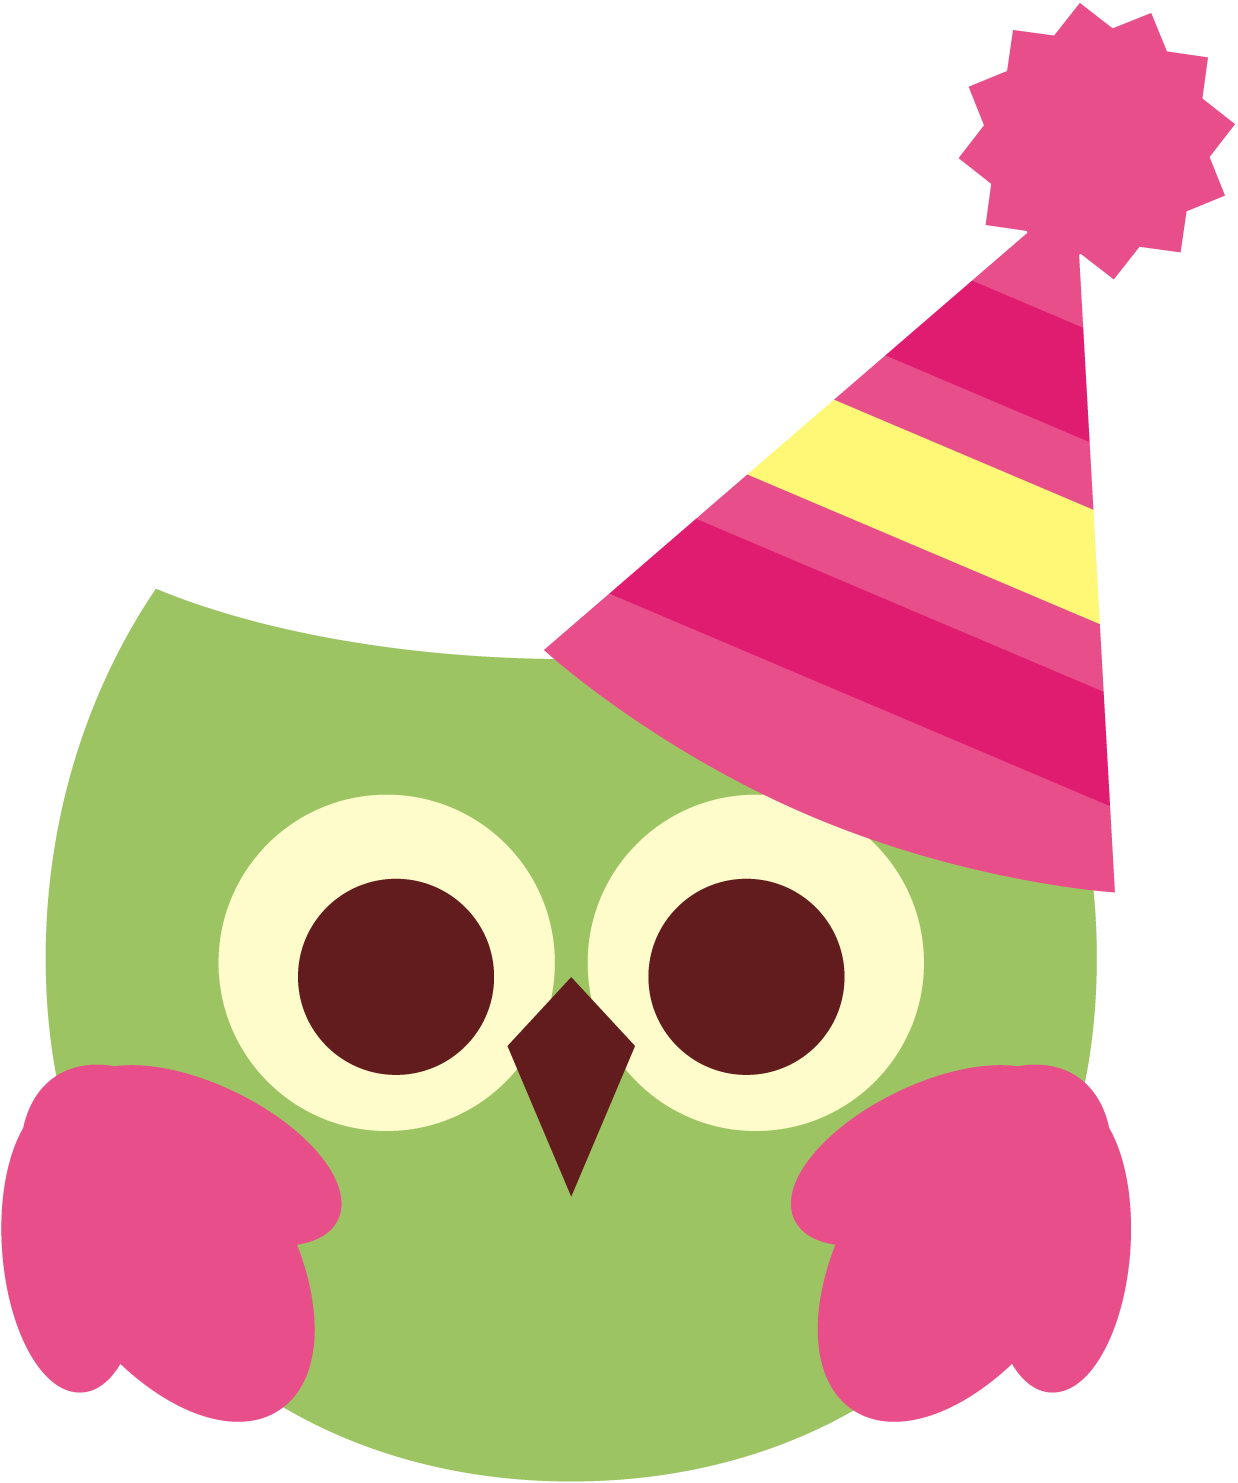 revideviBirthdayOwl - Birthday Cute PNG